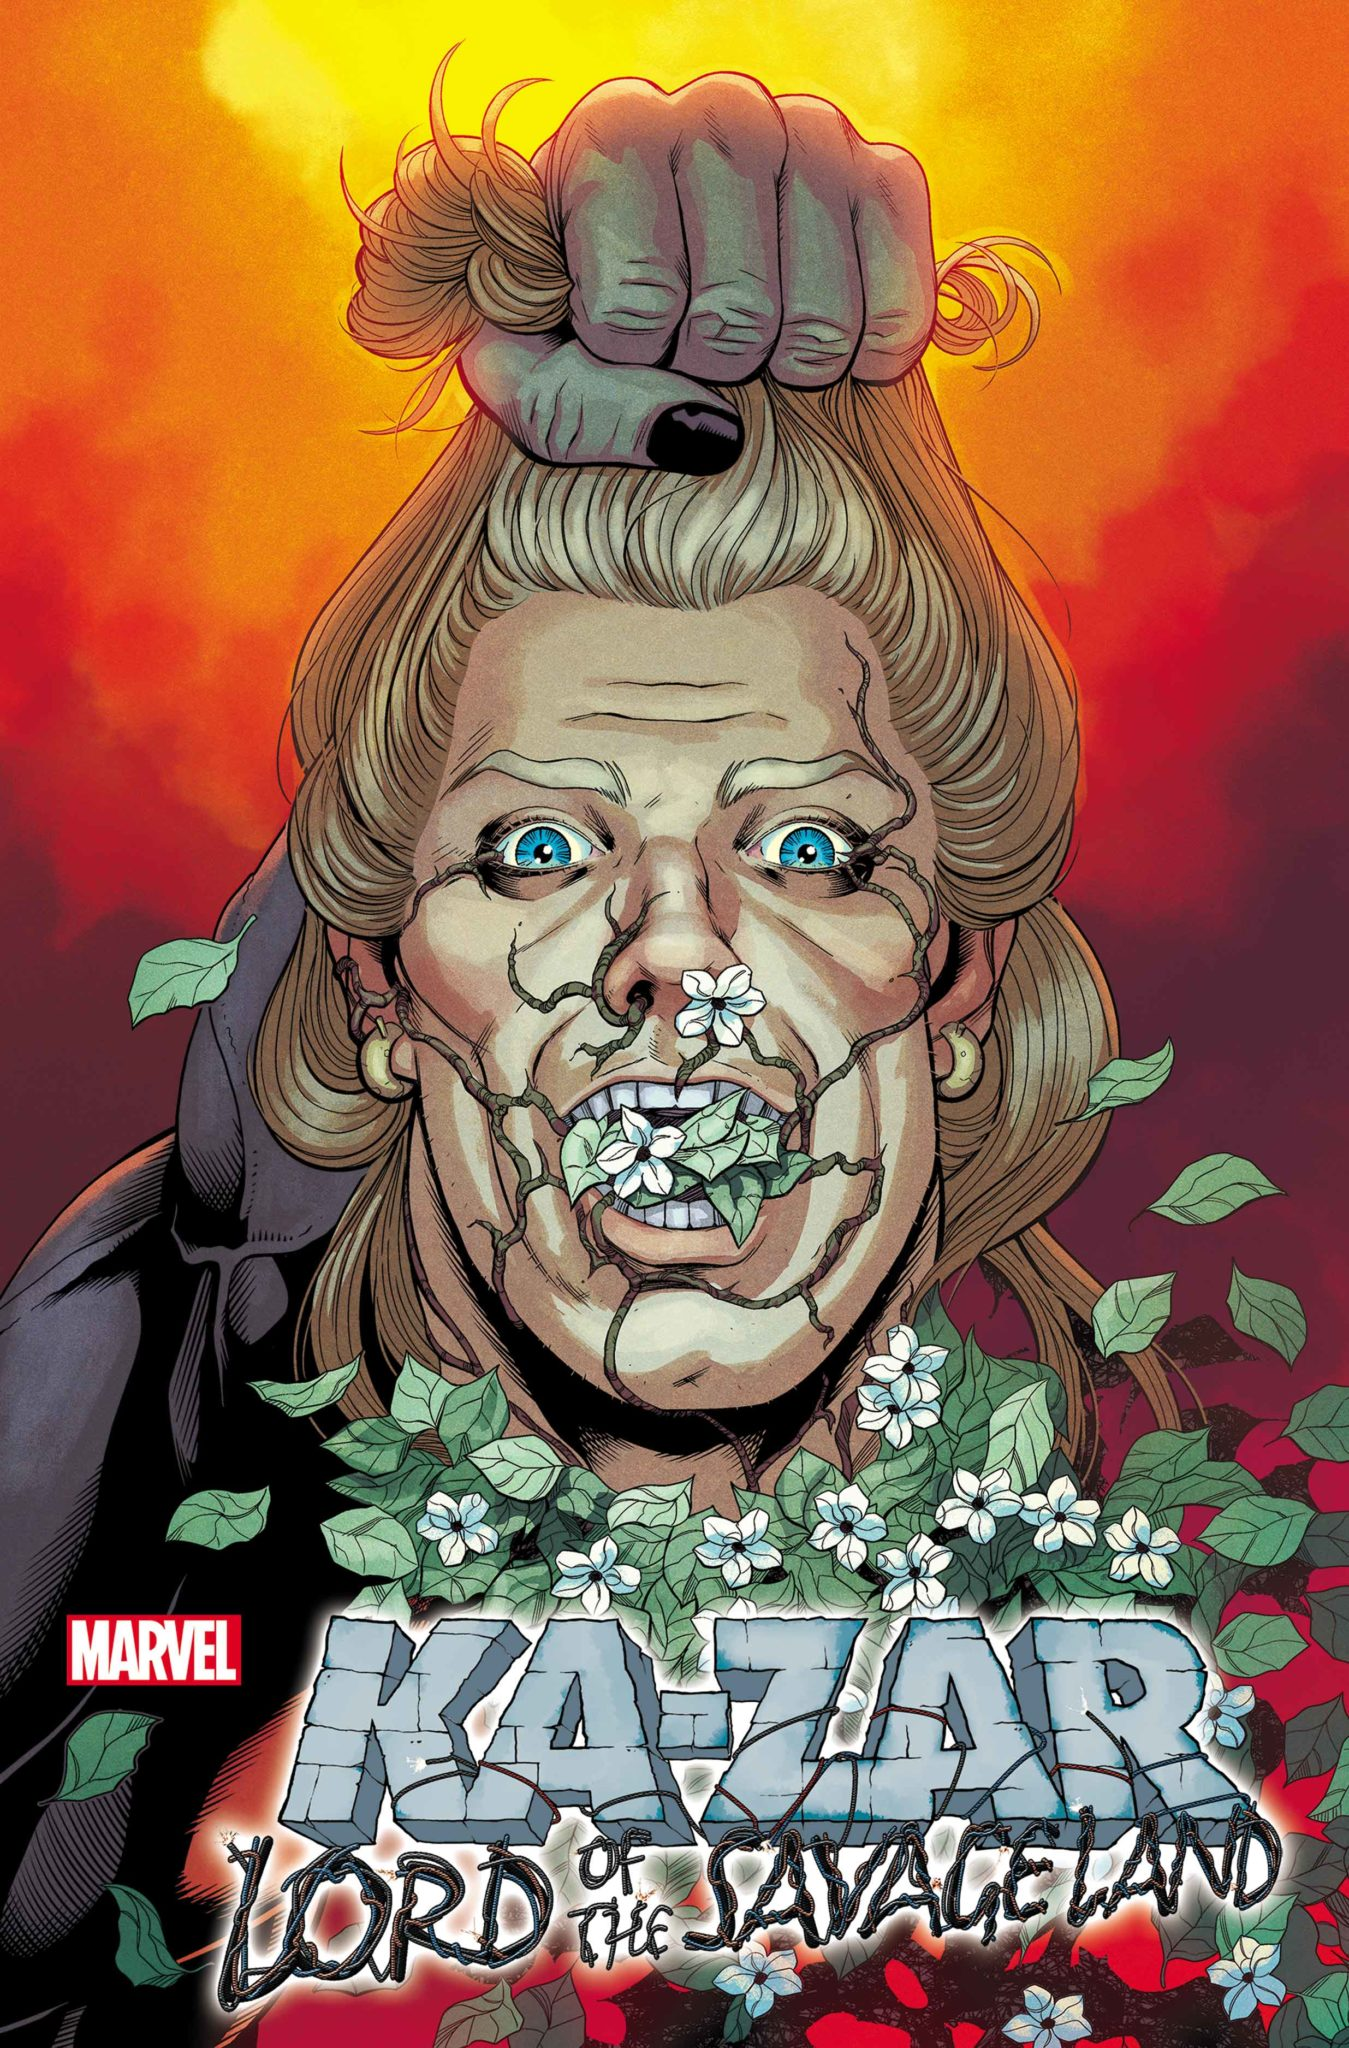 Ka-Zar Lord of the Savage Land variant cover